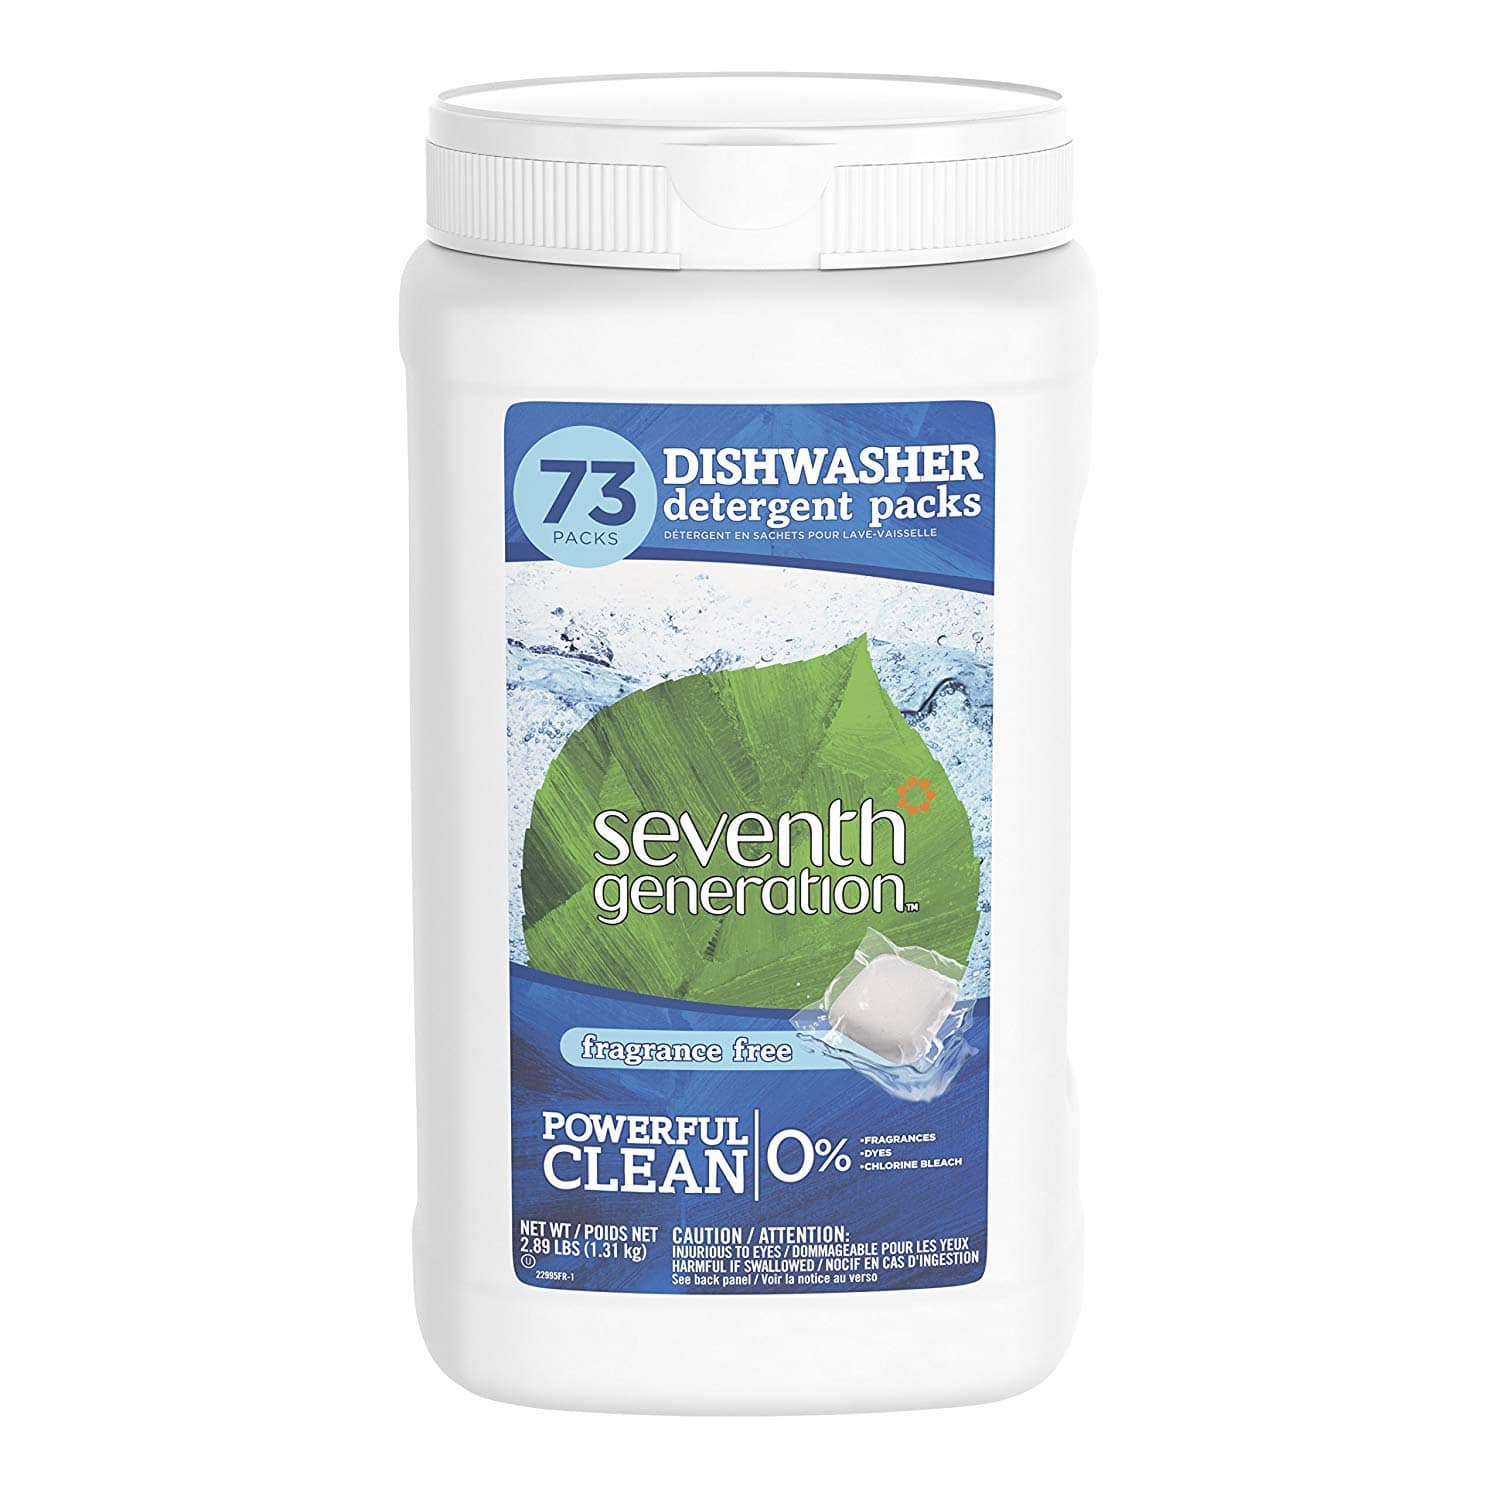 Seventh Generation Dishwasher Detergent Packs, 73 count 25% S&S $11.89